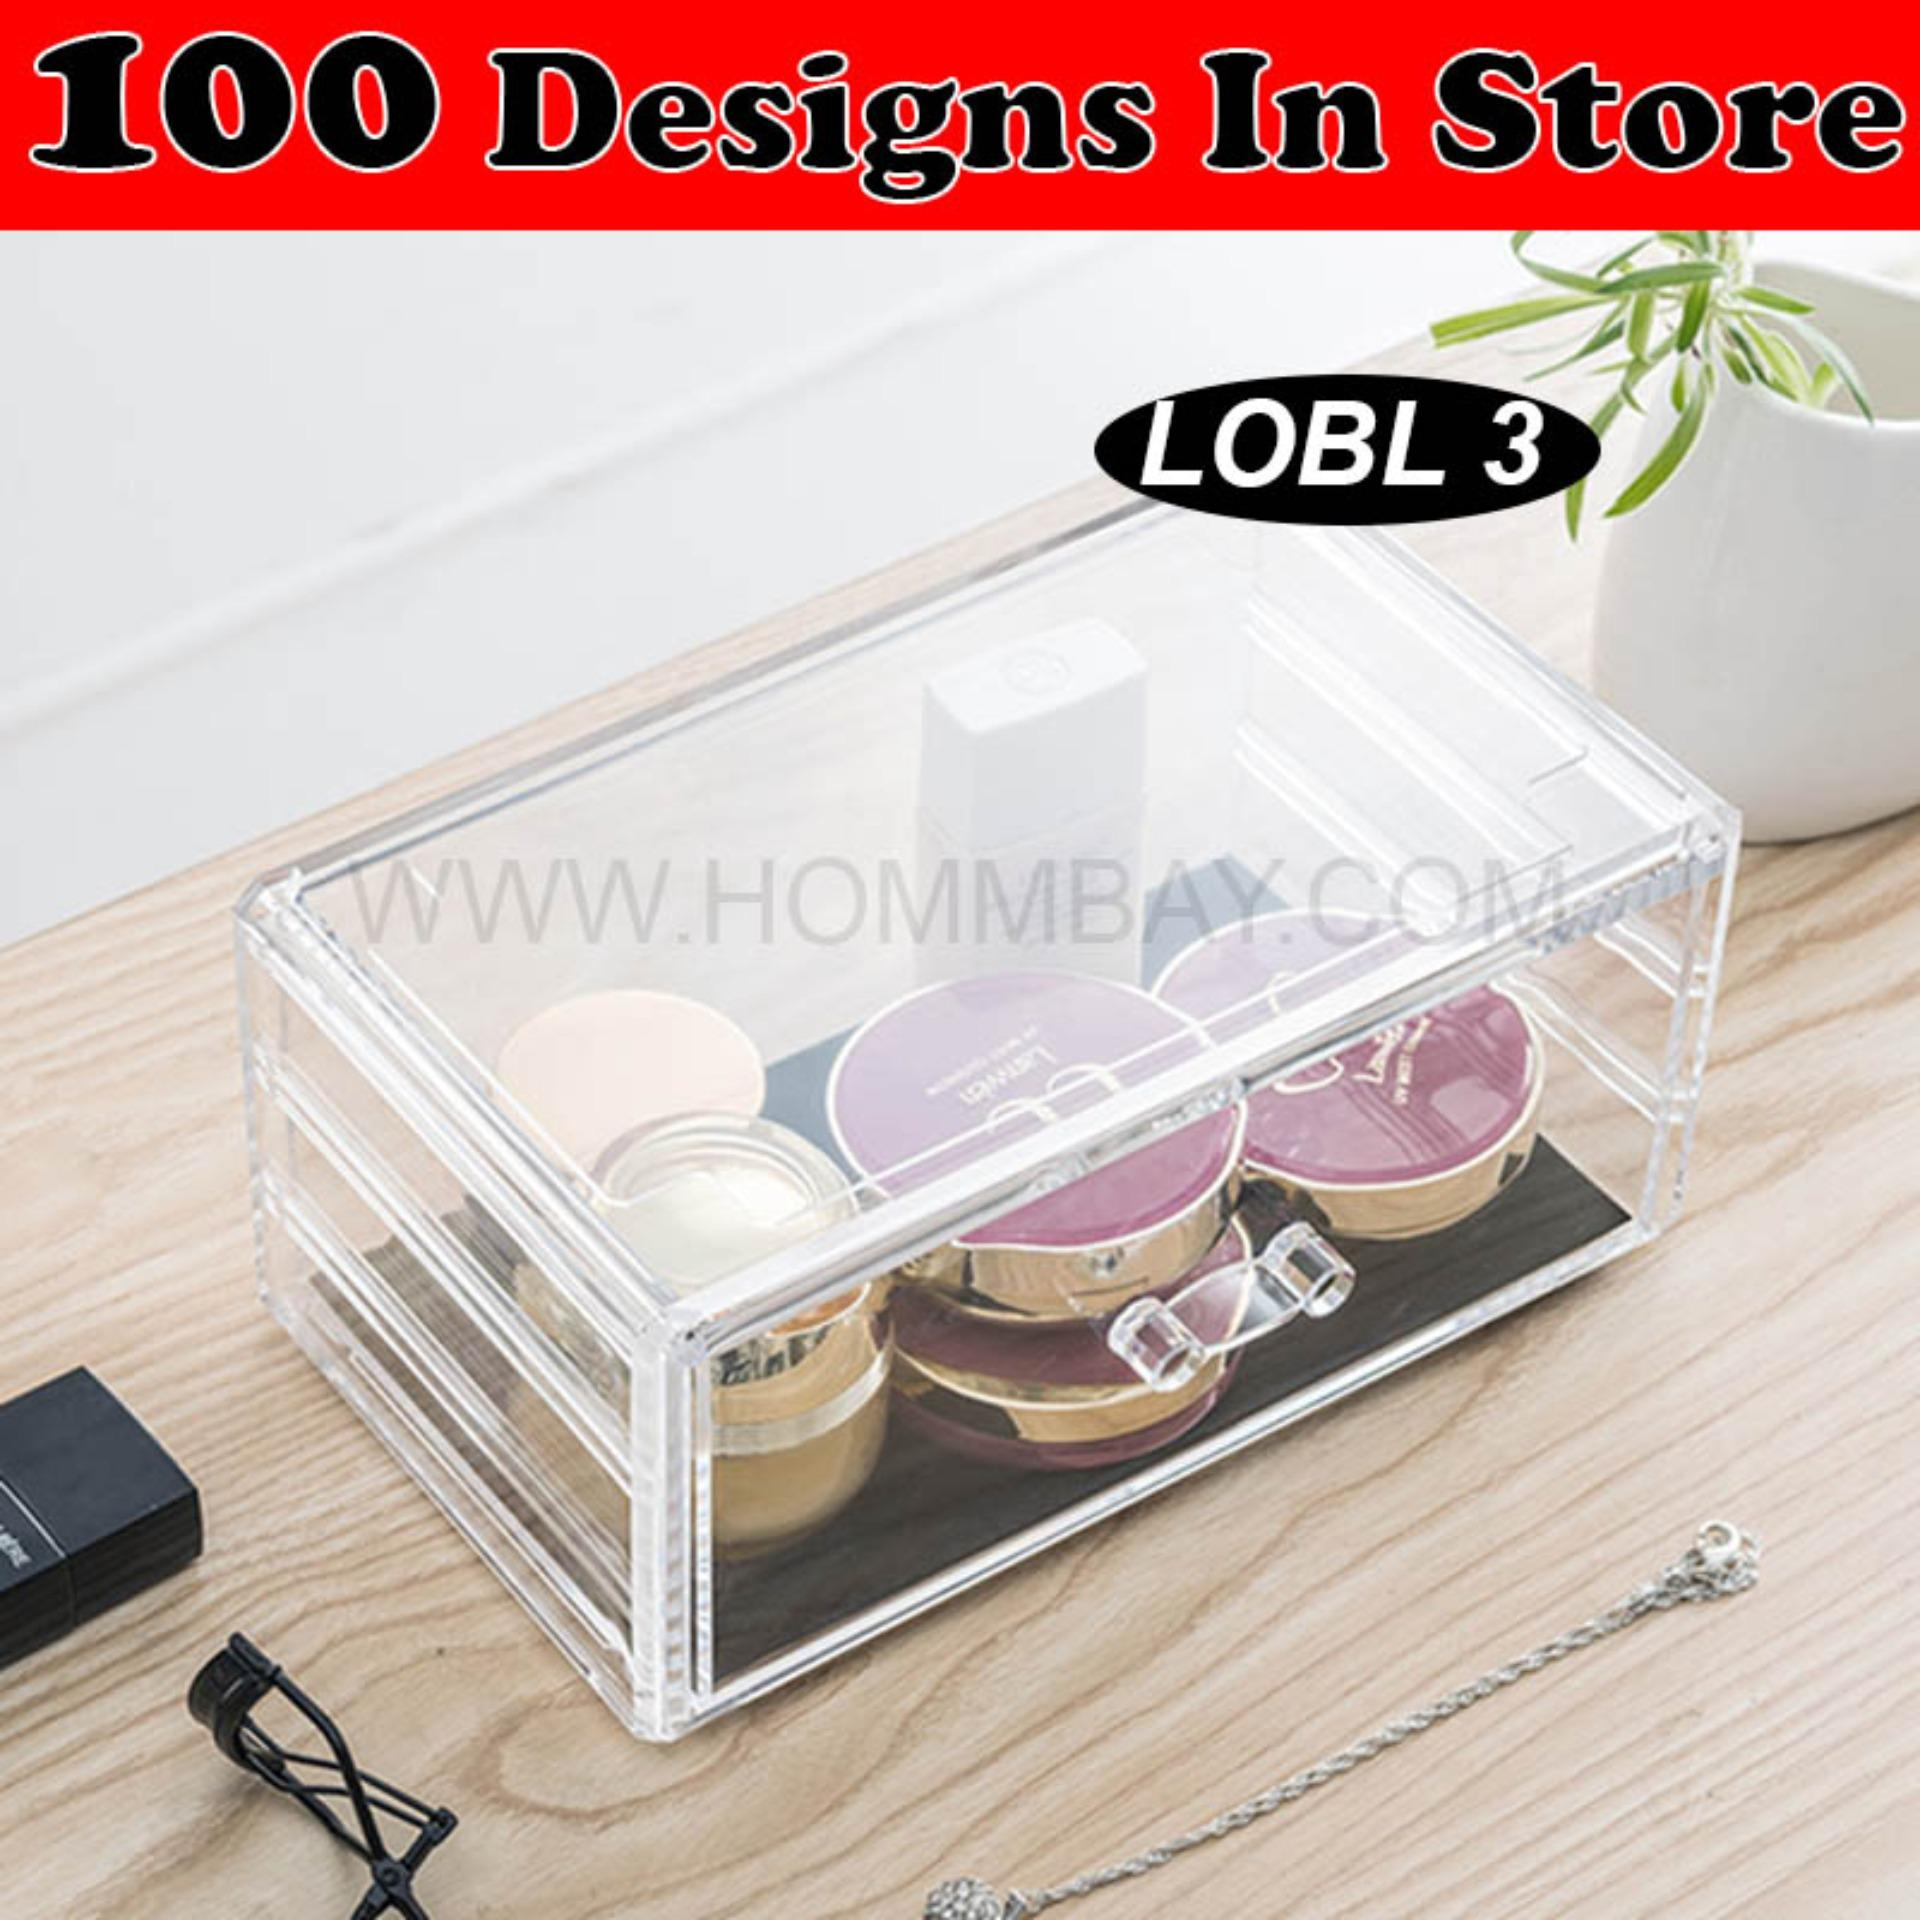 Sale Clear Acrylic Transparent Make Up Makeup Lipstick Brush Brushes Cosmetic Jewellery Jewelry Organiser Organizer Drawer Storage Box Holder I Large I Stackable I Lobl 3 Online Singapore